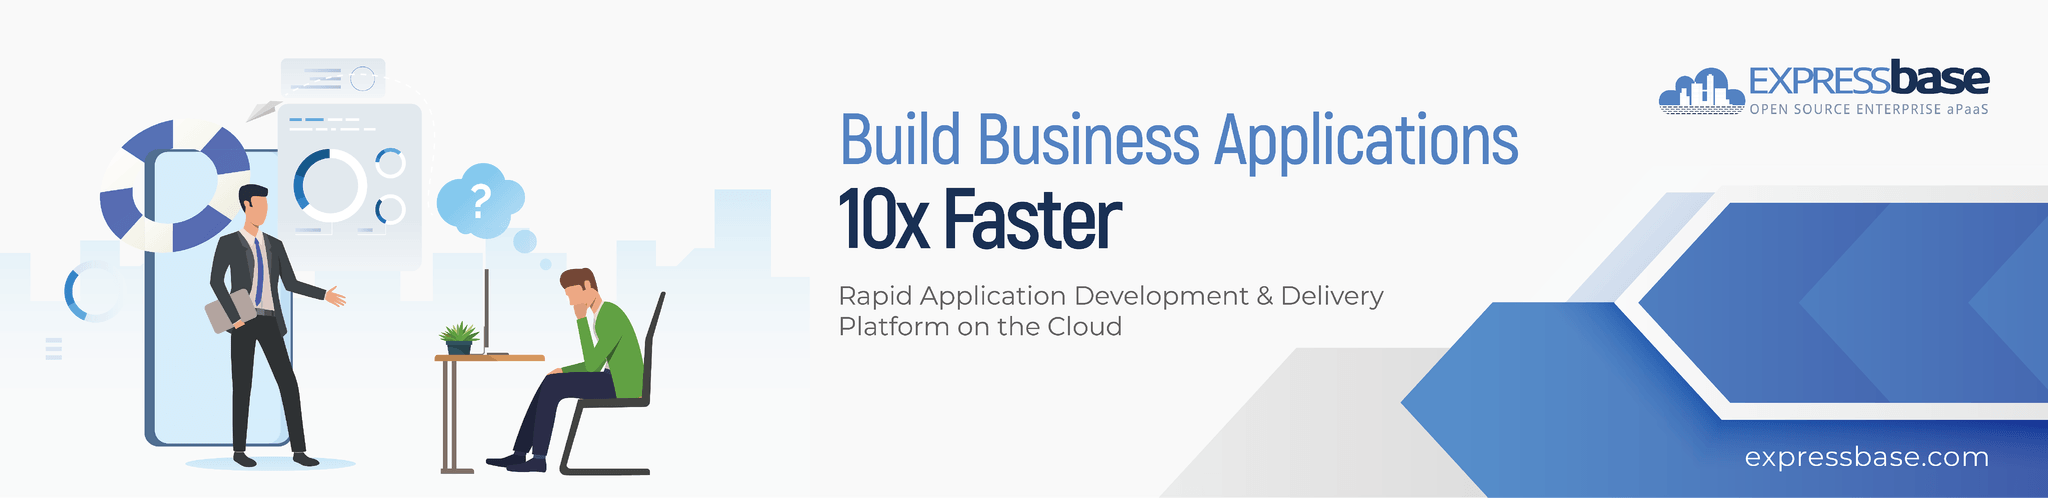 An open-source cloud platform to build business apps 10x faster